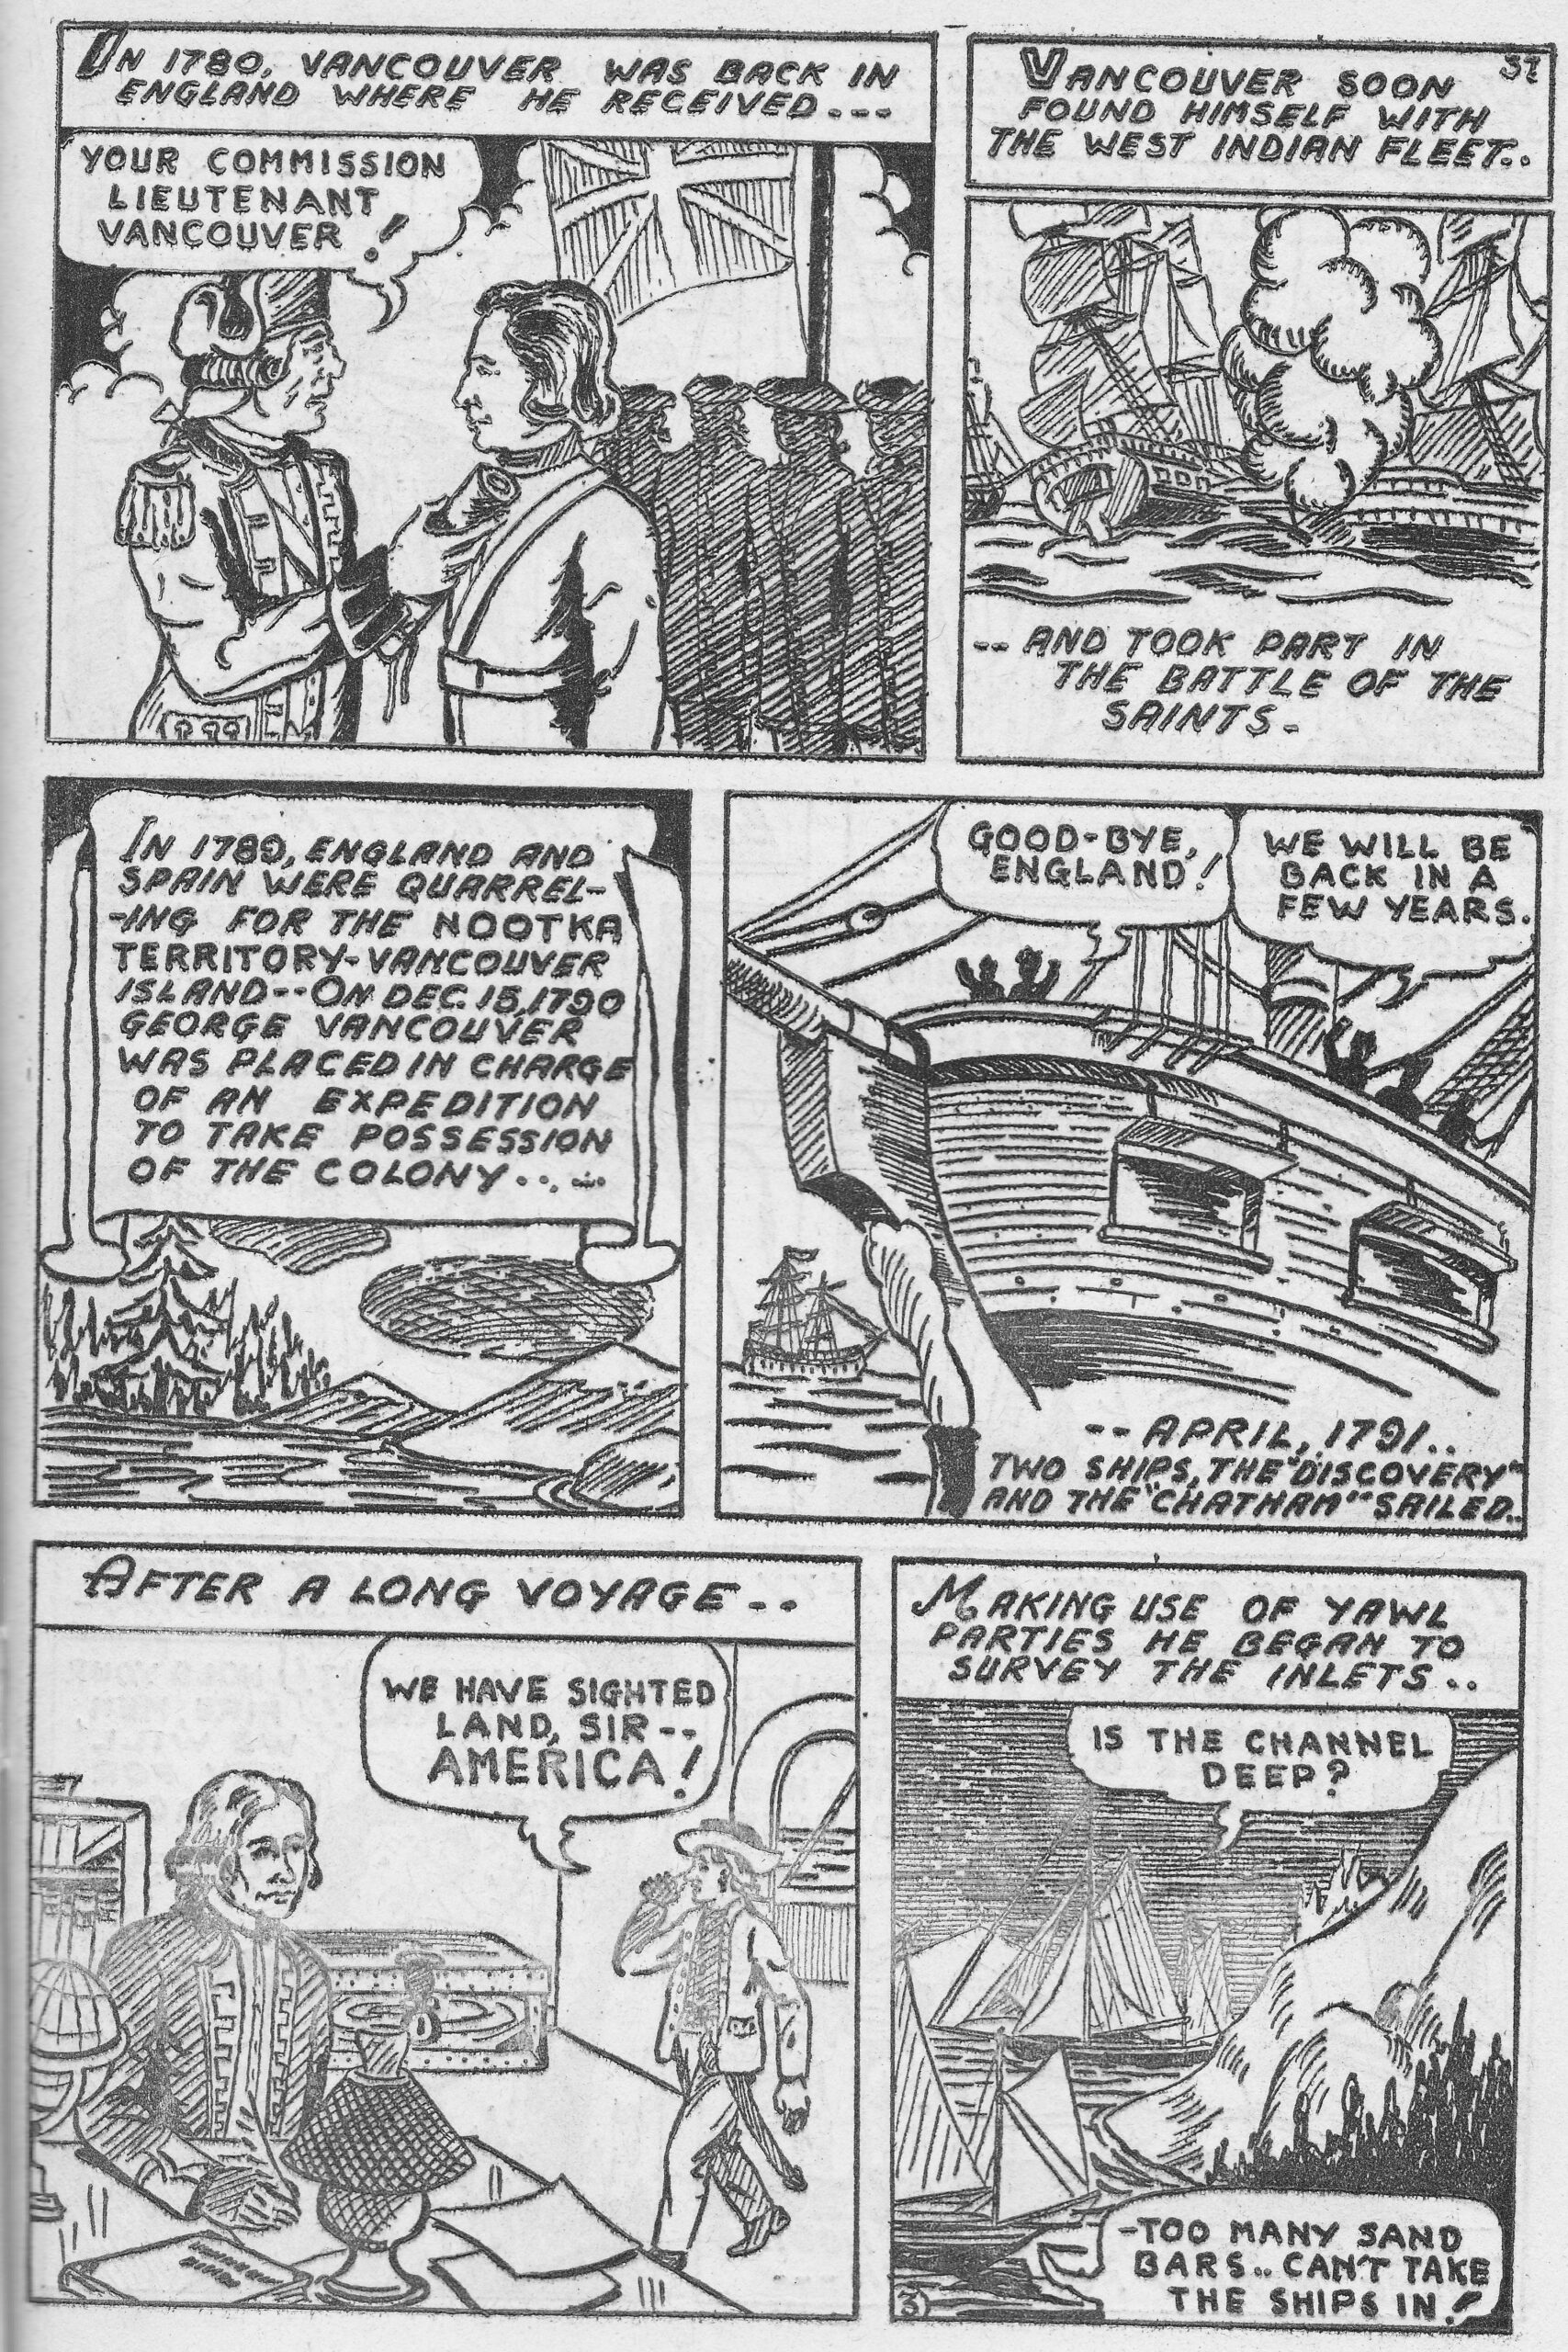 C:\Users\Robert\Documents\CARTOONING ILLUSTRATION ANIMATION\IMAGE BY CARTOONIST\P\PIETROPAOLO, Canadian Heroes, 3-5, April 1944, 37.jpg